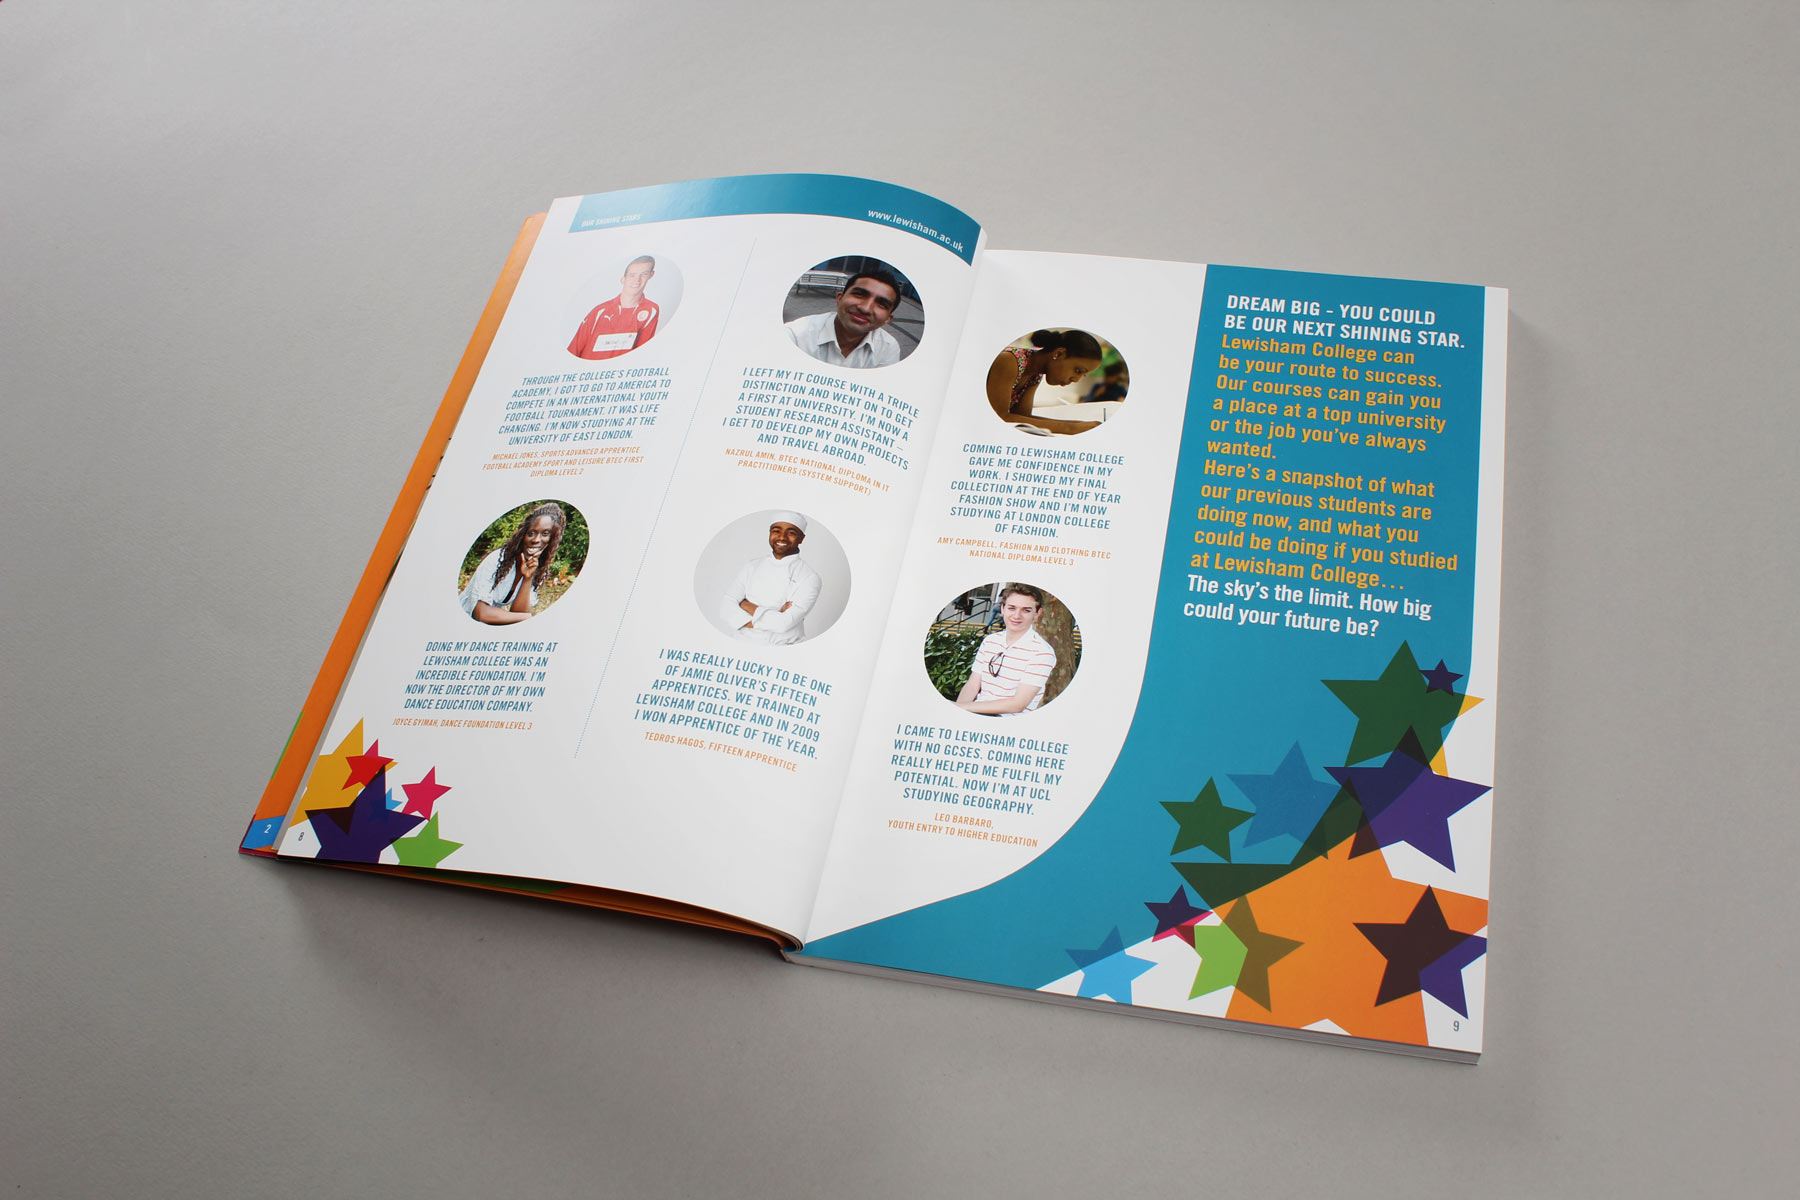 The publication reaches the widest possible audience via the use of sophisticated yet friendly design aesthetics.